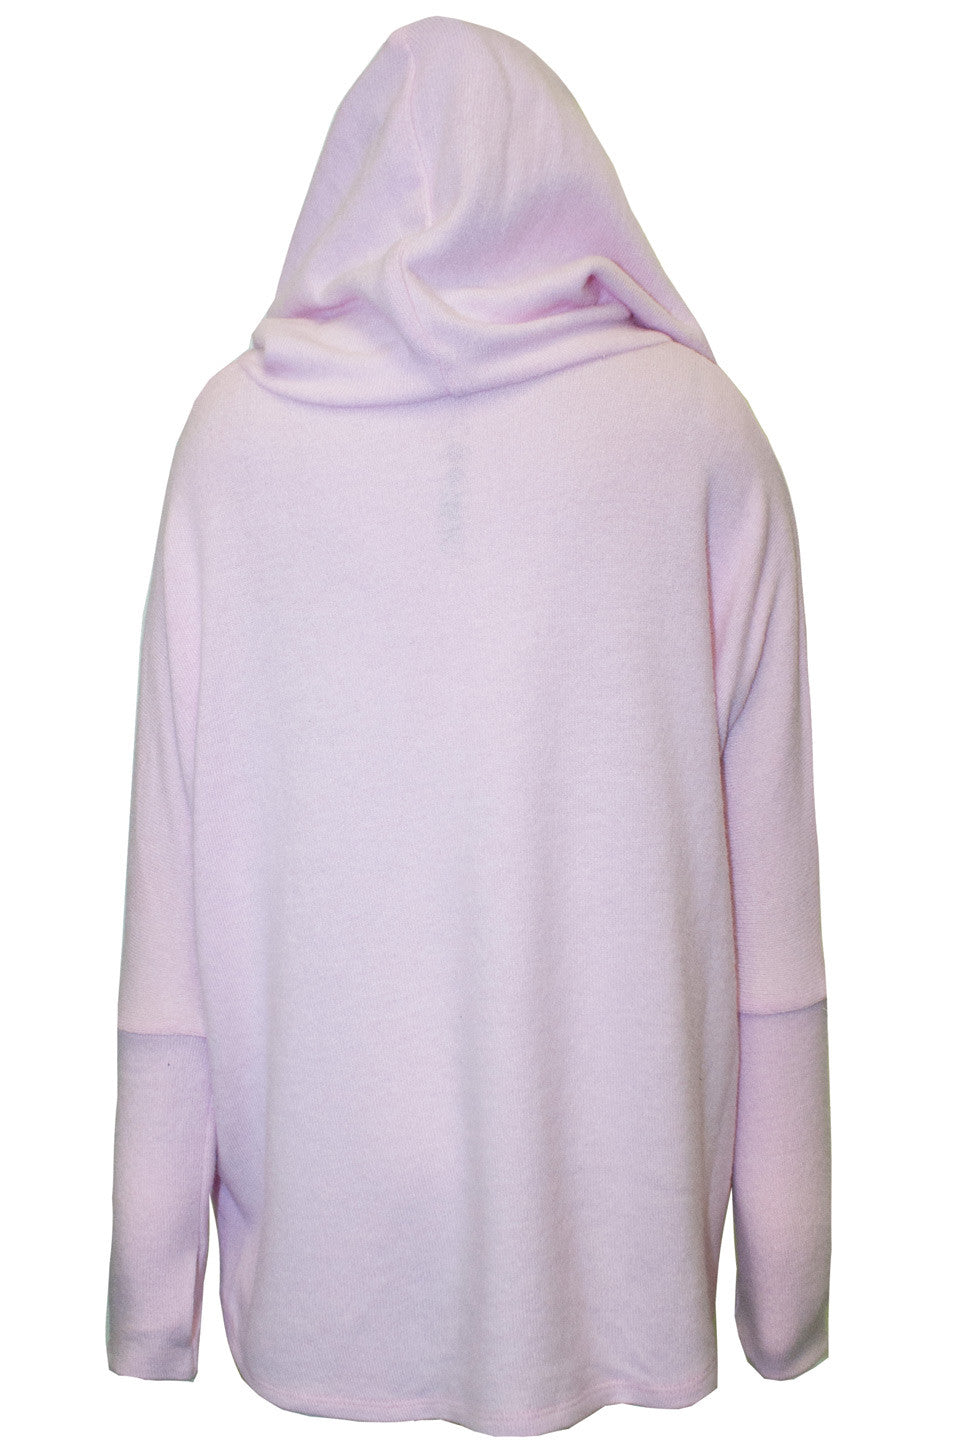 Cookie Color Rolls Oversized Pullover W/ Hood - Lauren Moshi - 4